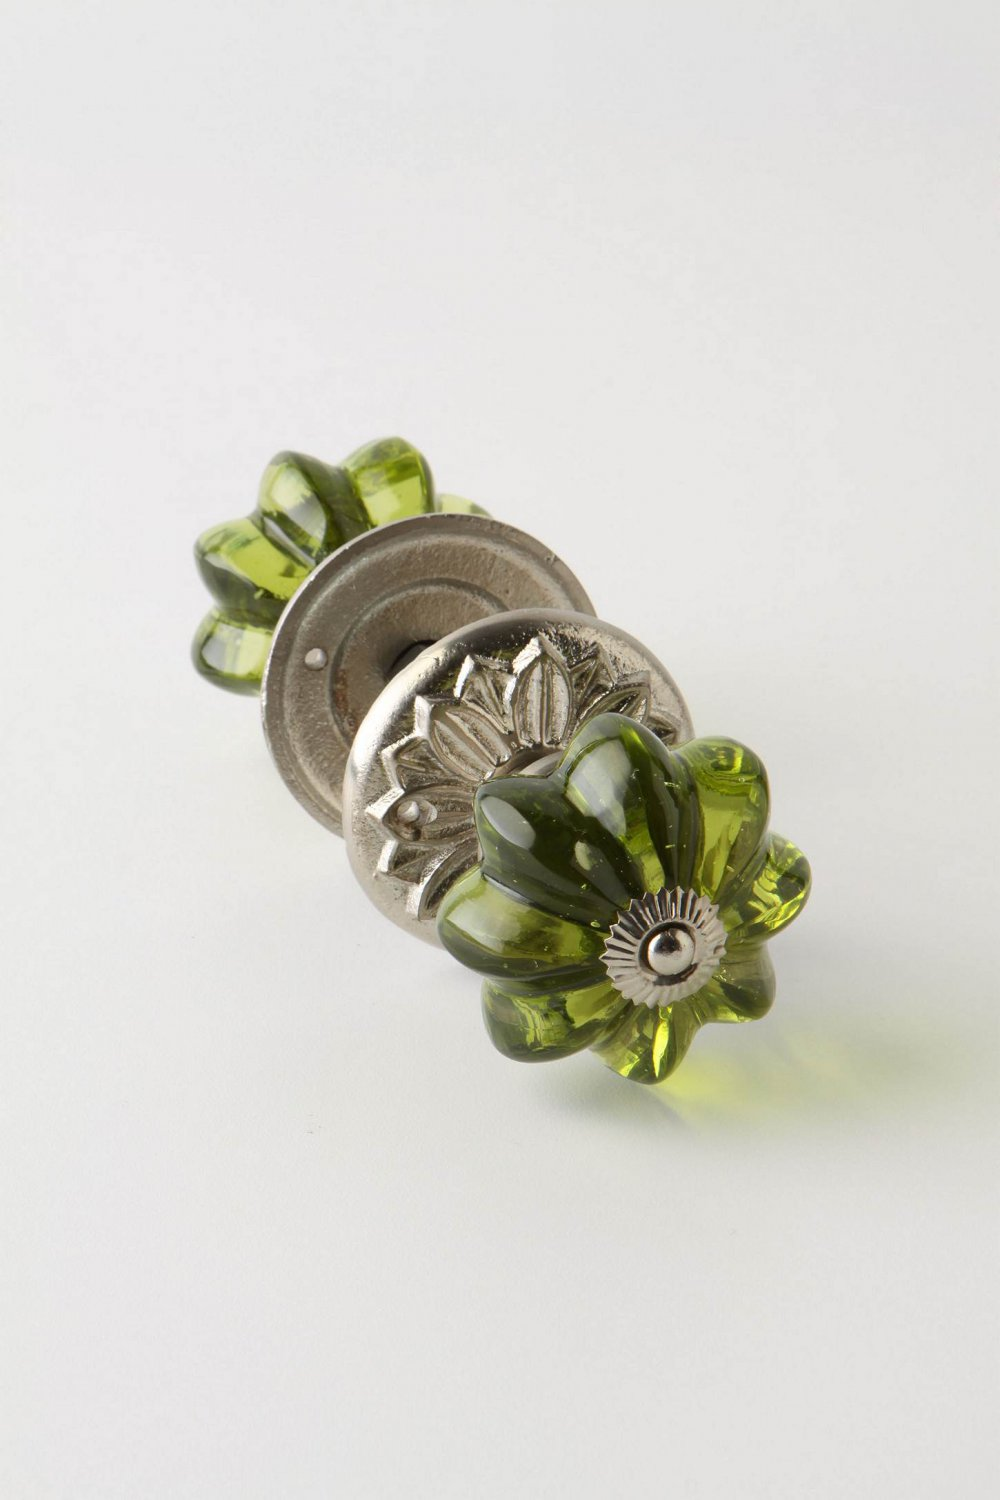 Anthropologie Glass Melon Doorknob Silver Tone & Olive Green